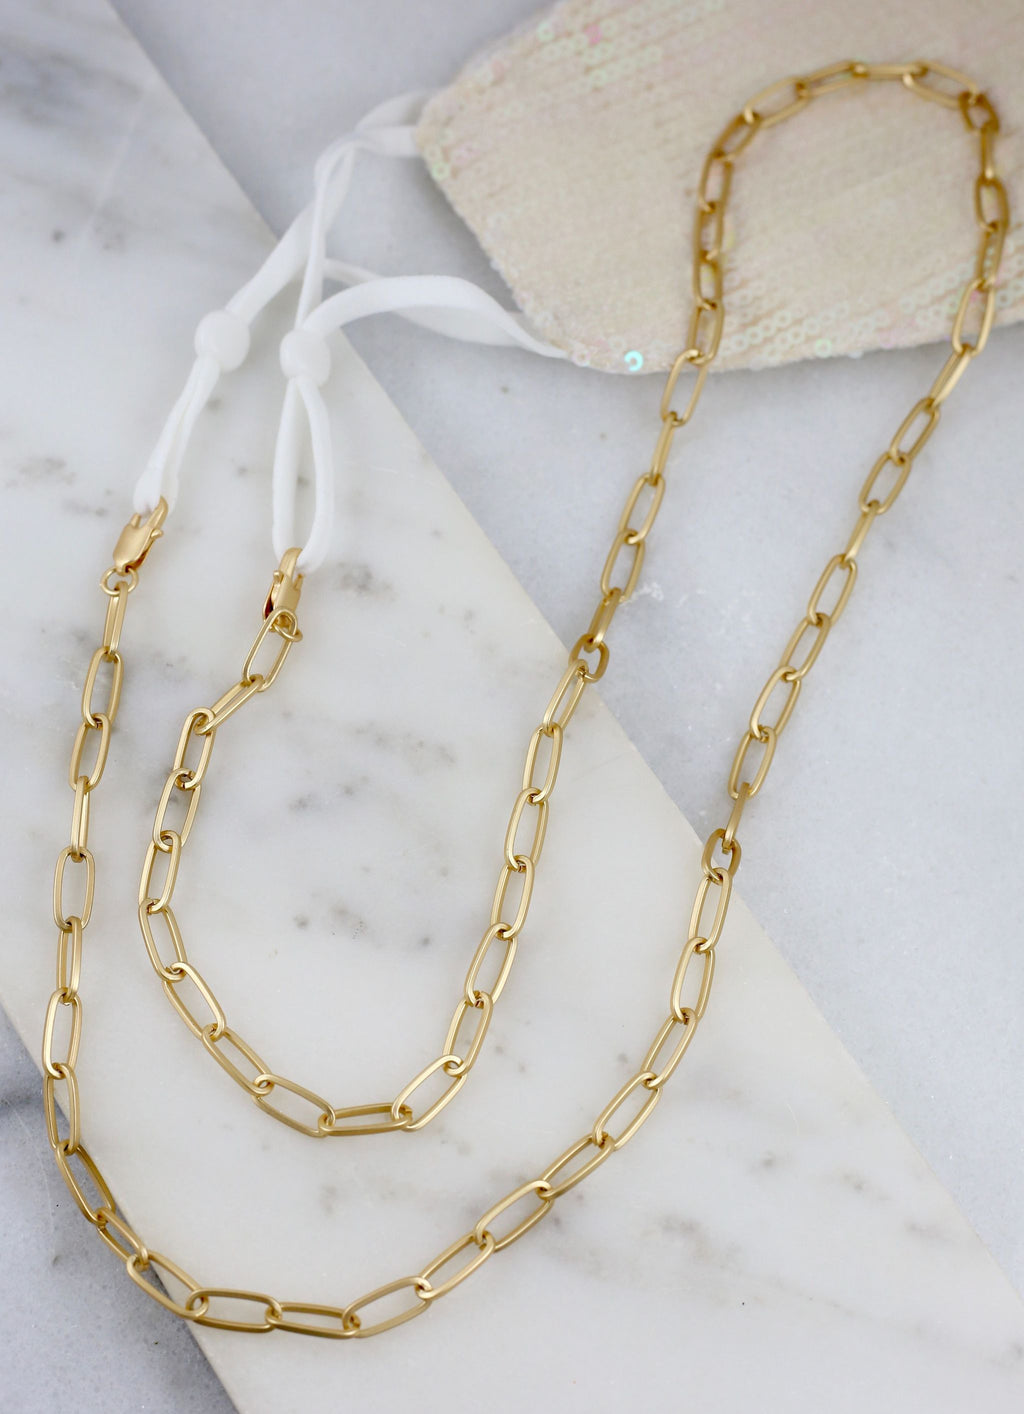 Jones Link Mask Chain Necklace Gold - Caroline Hill